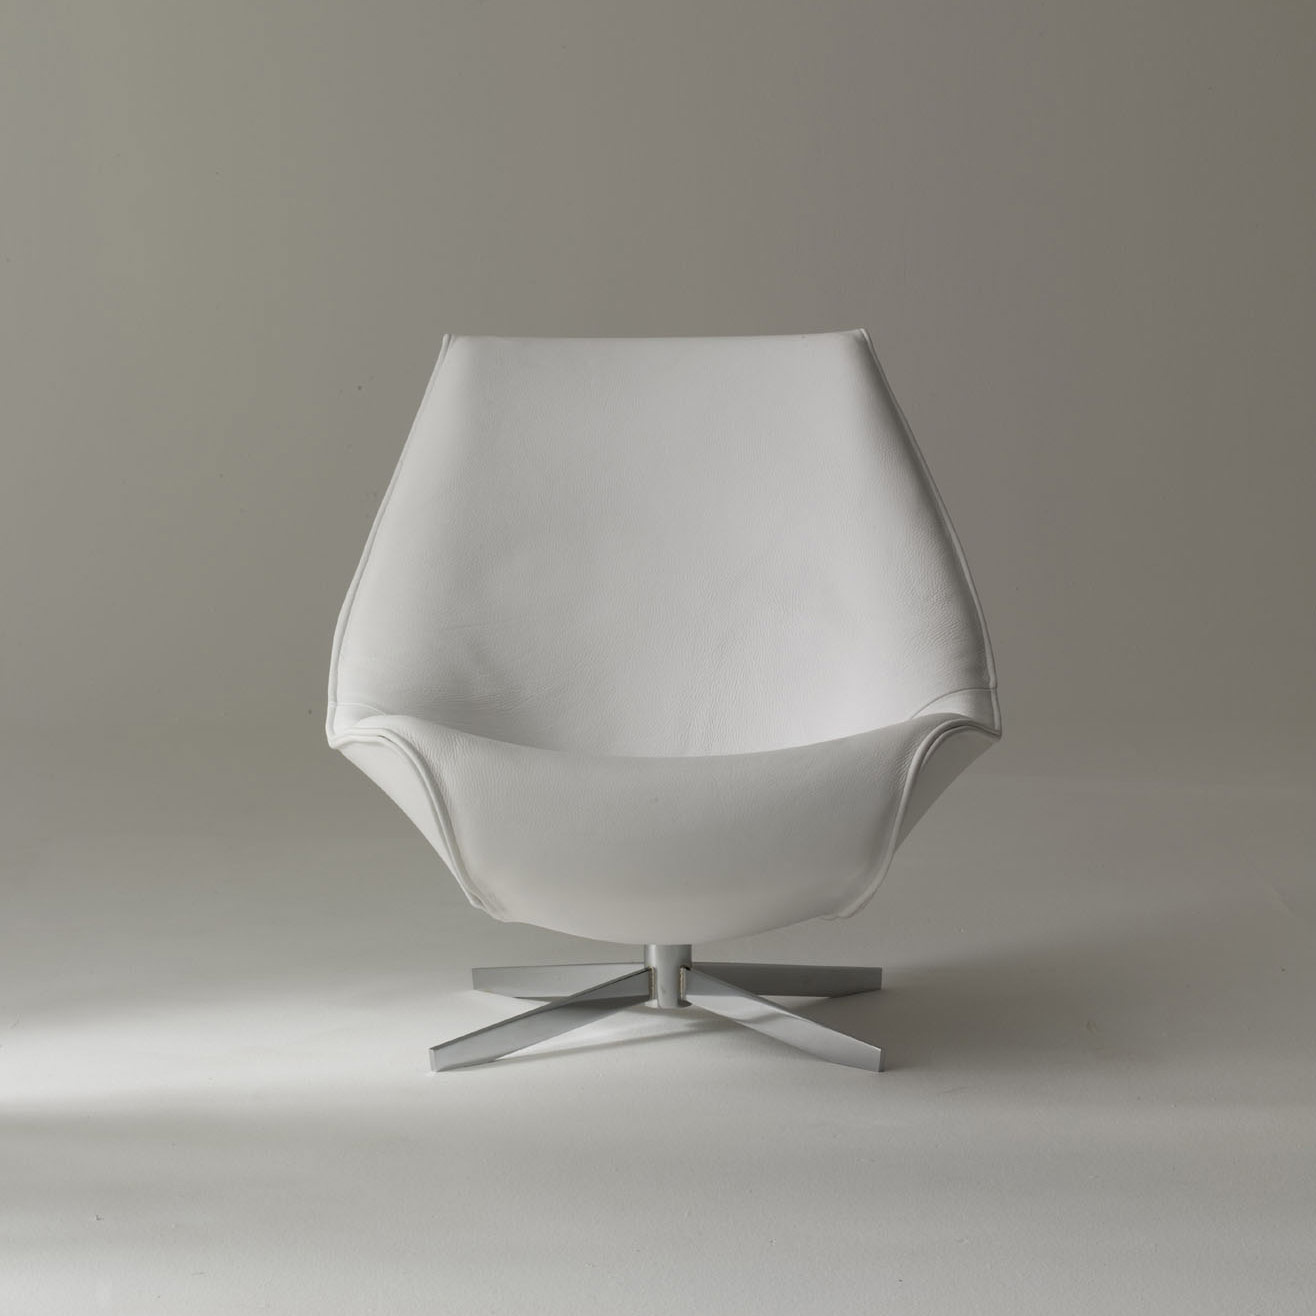 Fauteuil design pivotant Coque - IDKREA Collection